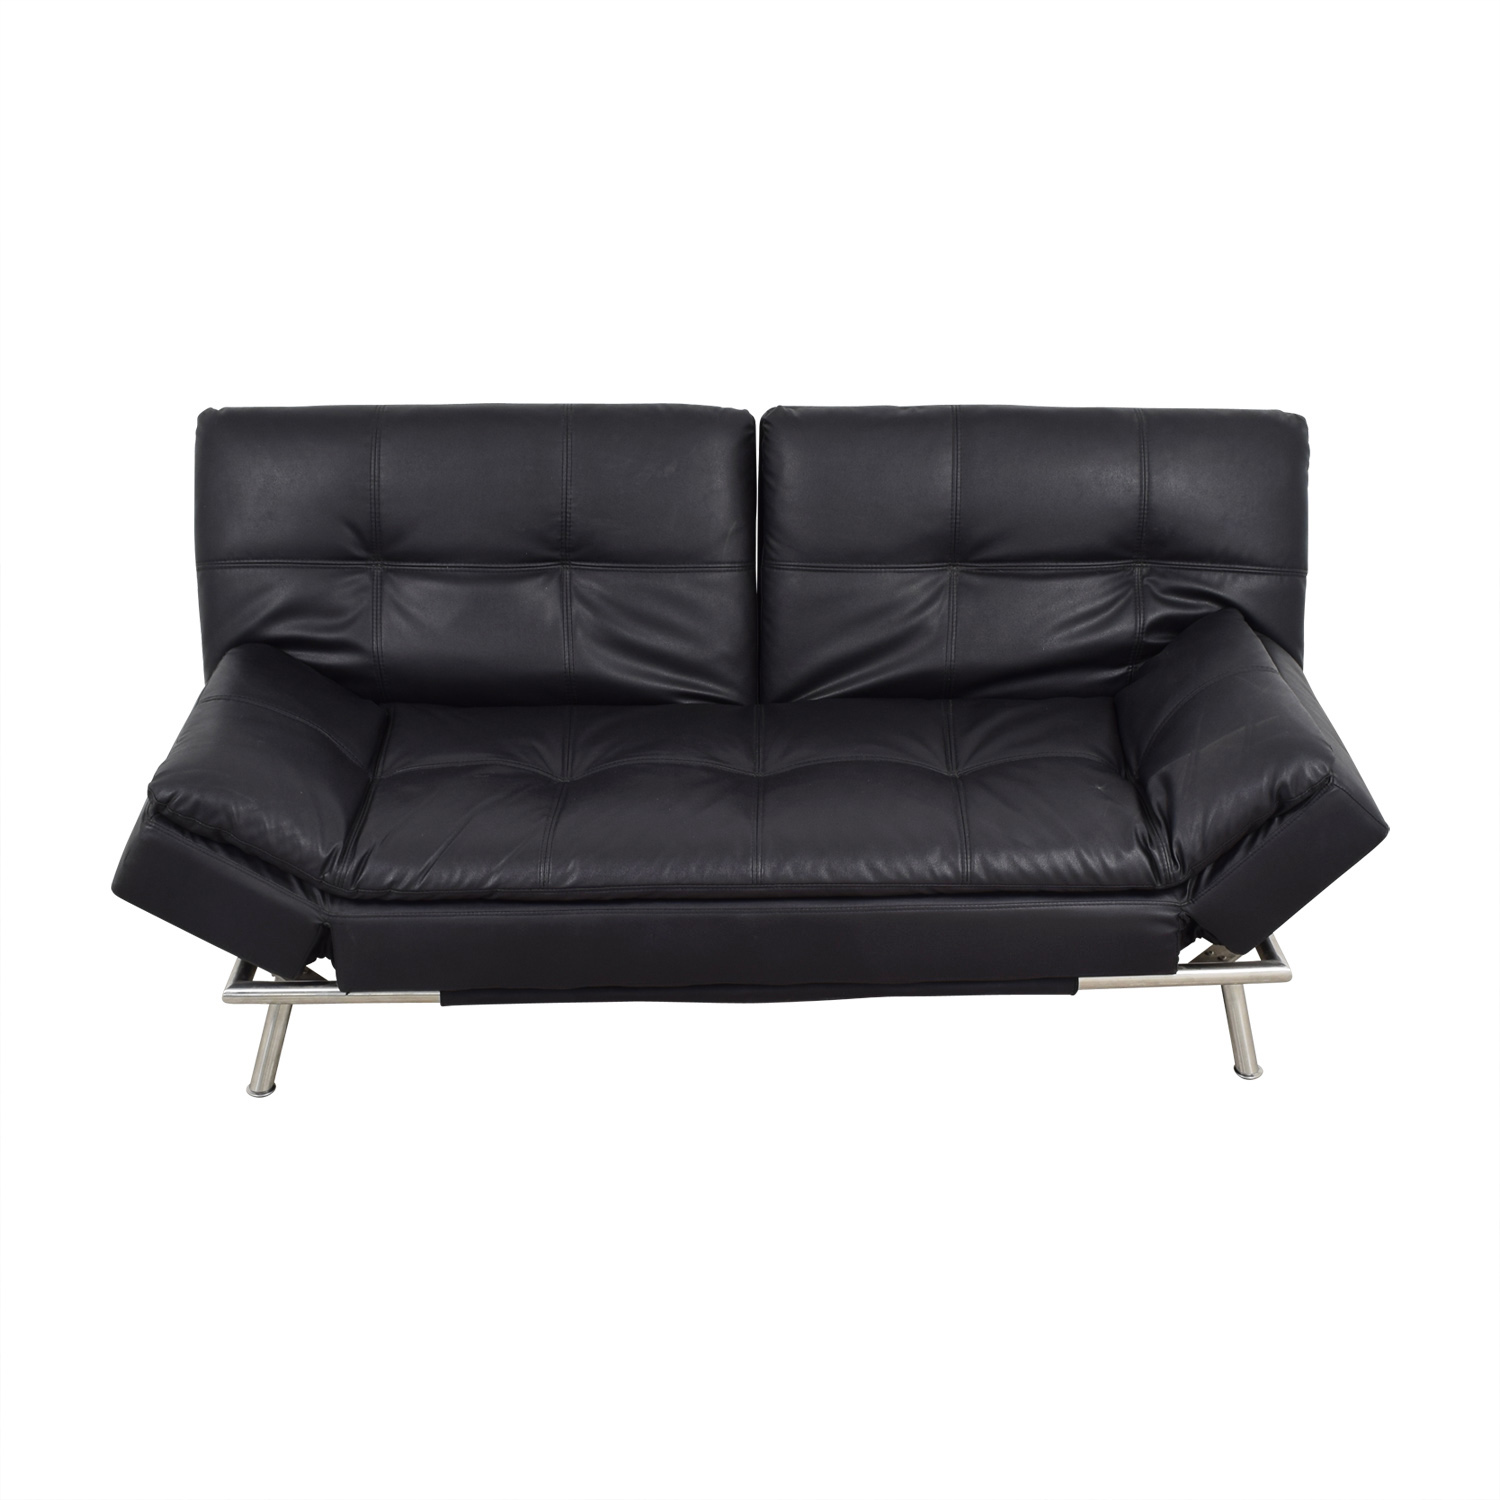 sofa reviews consumer reports center table images classic sofas used for sale